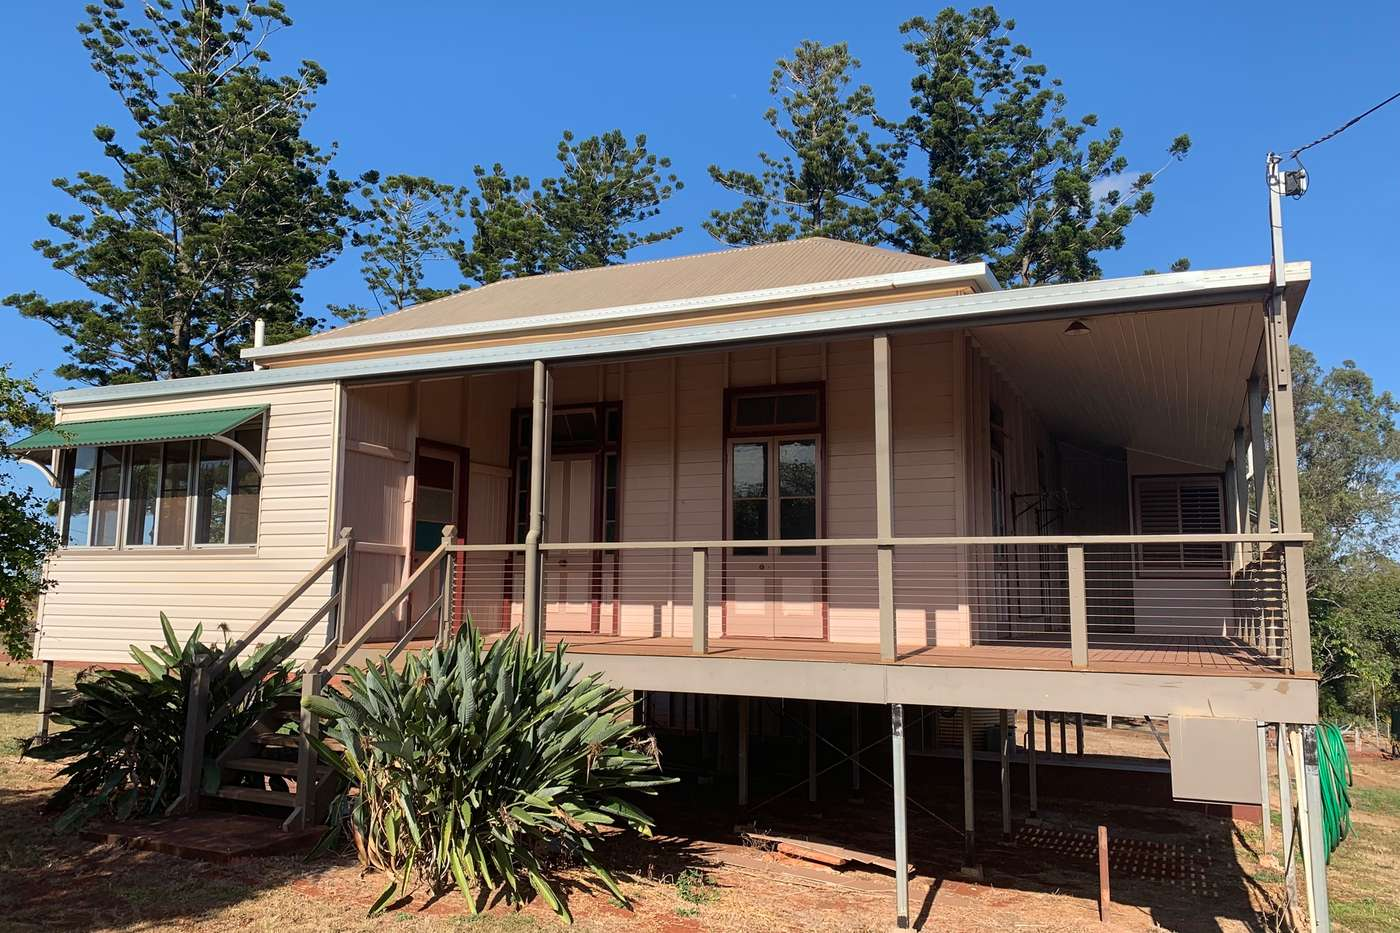 Main view of Homely house listing, 3 Gardner Street, Cordalba, QLD 4660